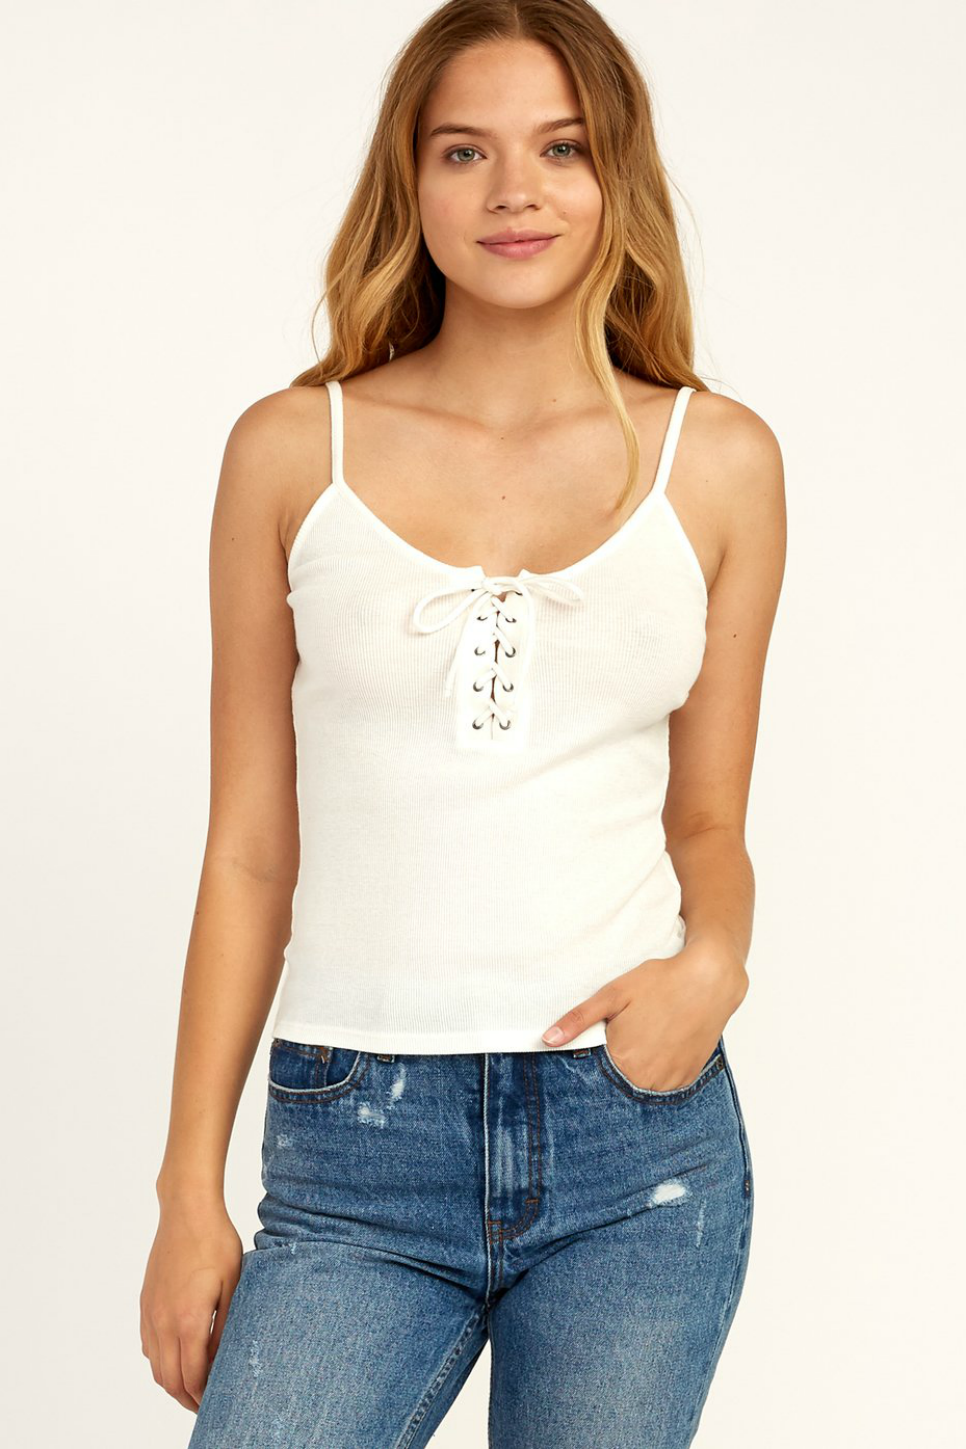 RVCA - Hinged - Whisper White - Front